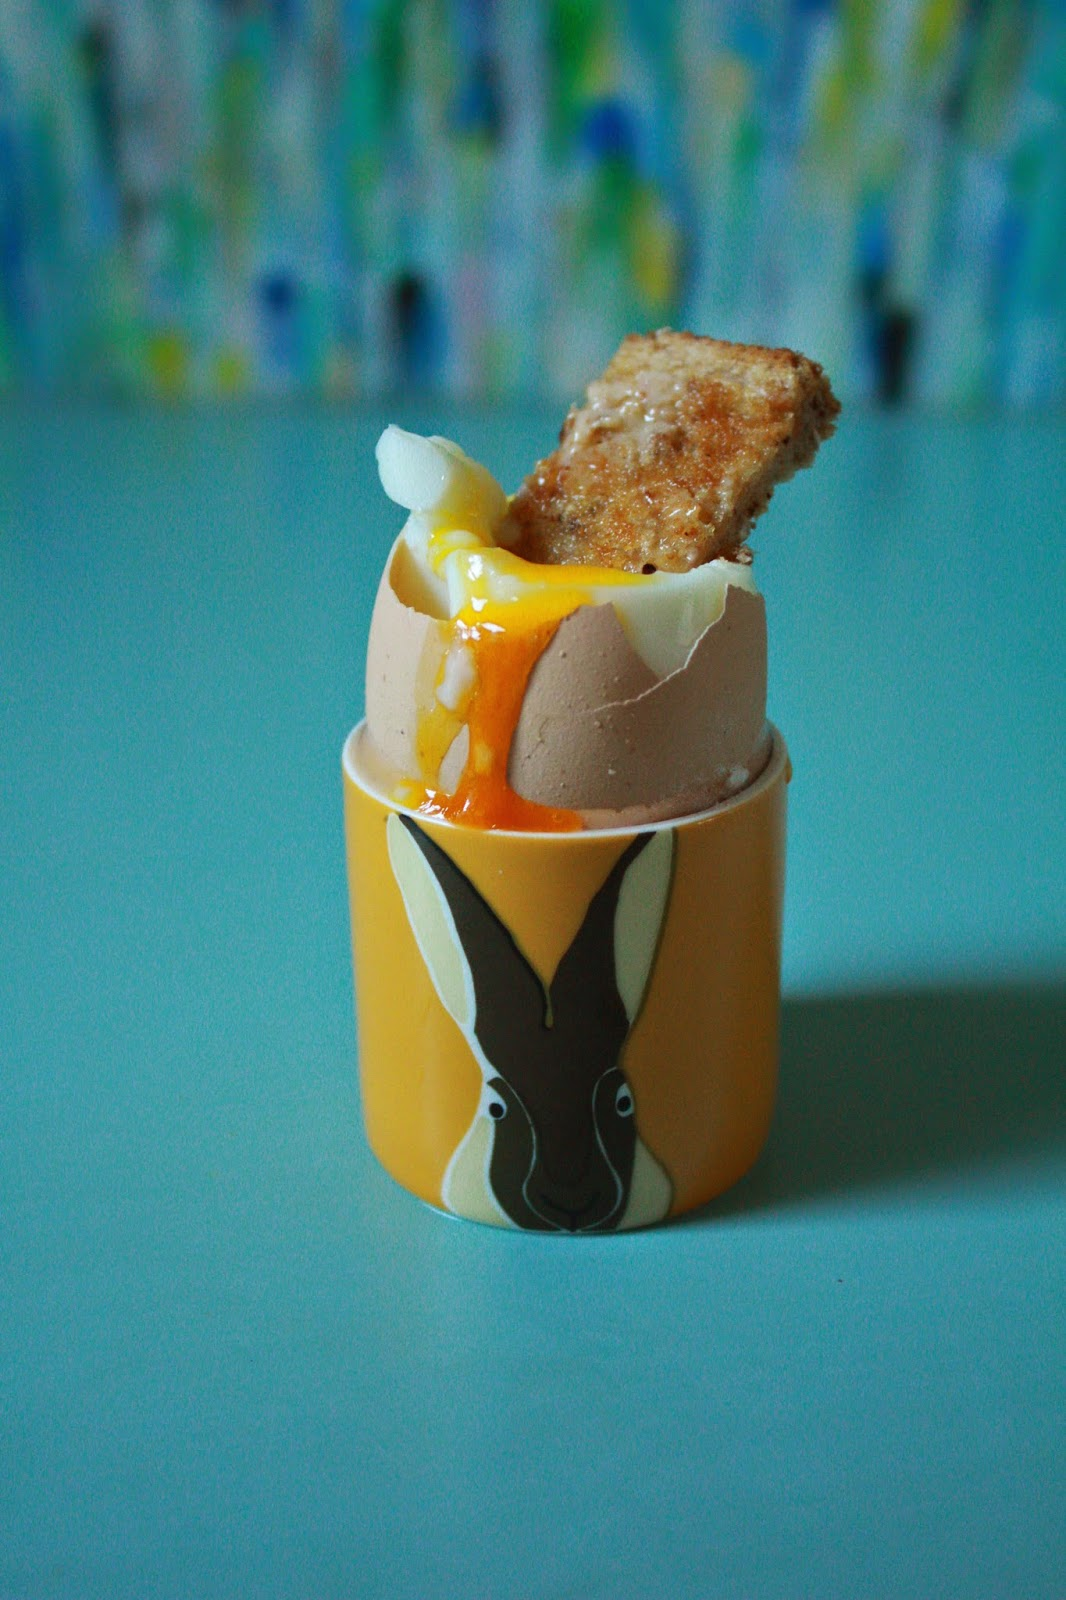 Boiled Egg and Soliders in a hare egg cup